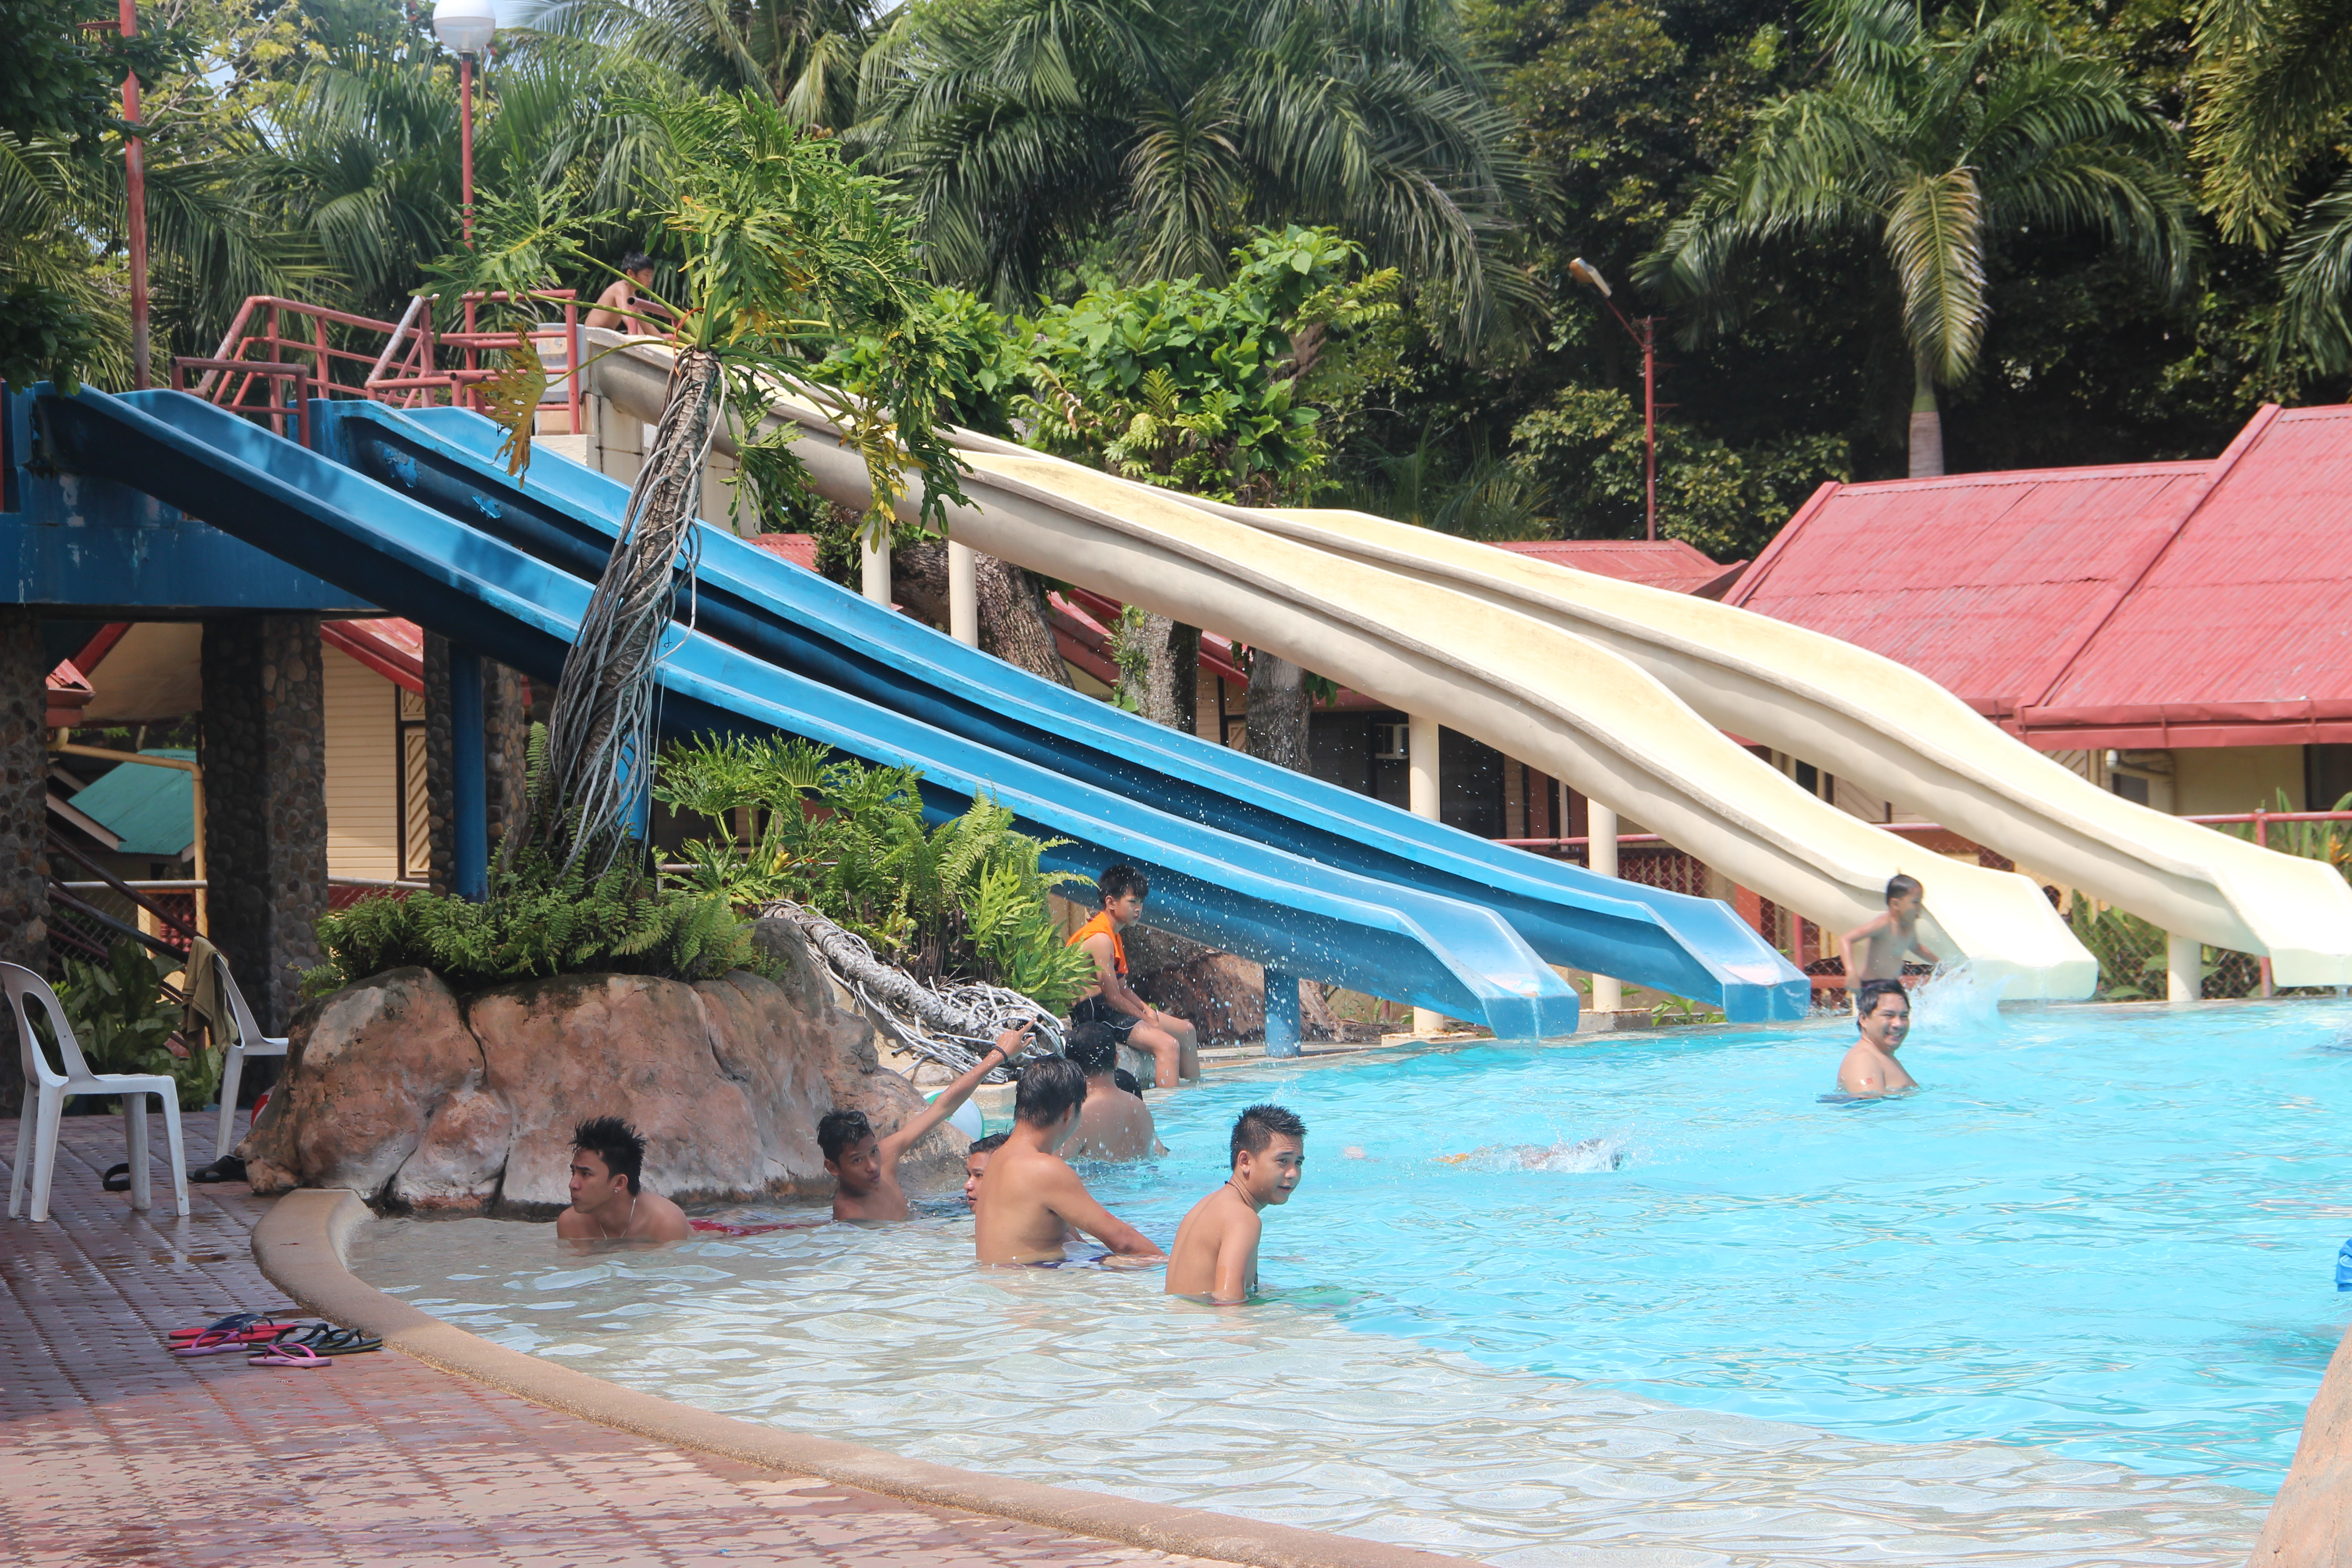 Mergrande beach resort davao city christine 39 s adventures - Apartelle in davao city with swimming pool ...